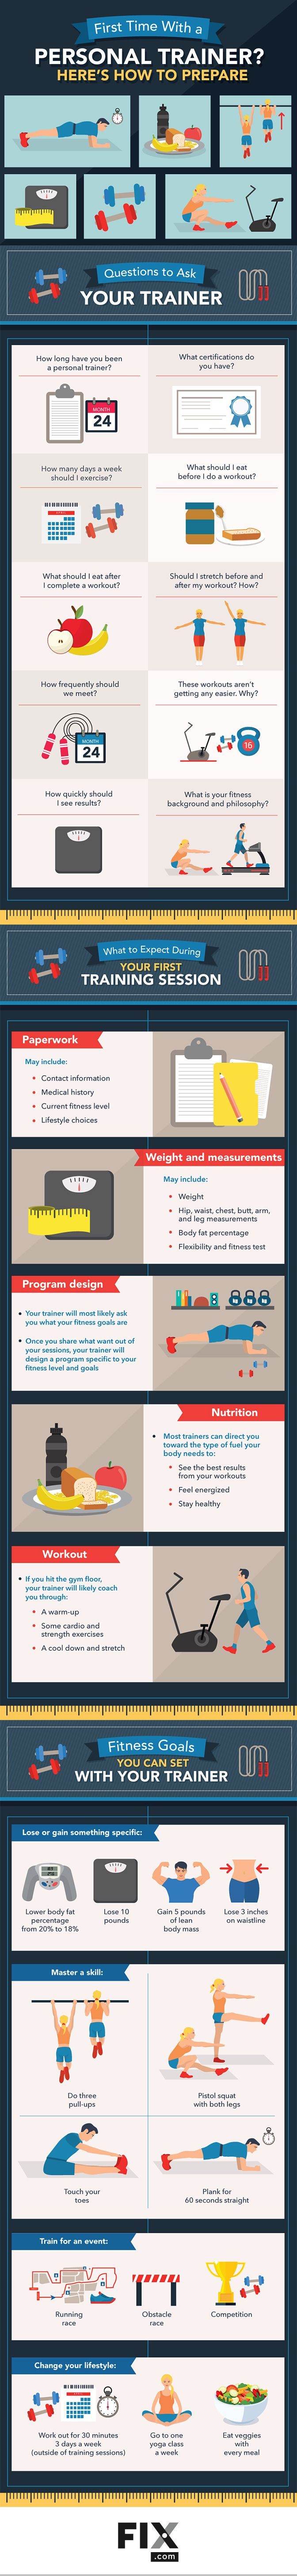 First Time with a Personal Trainer? Here's How to Prepare #Infographic